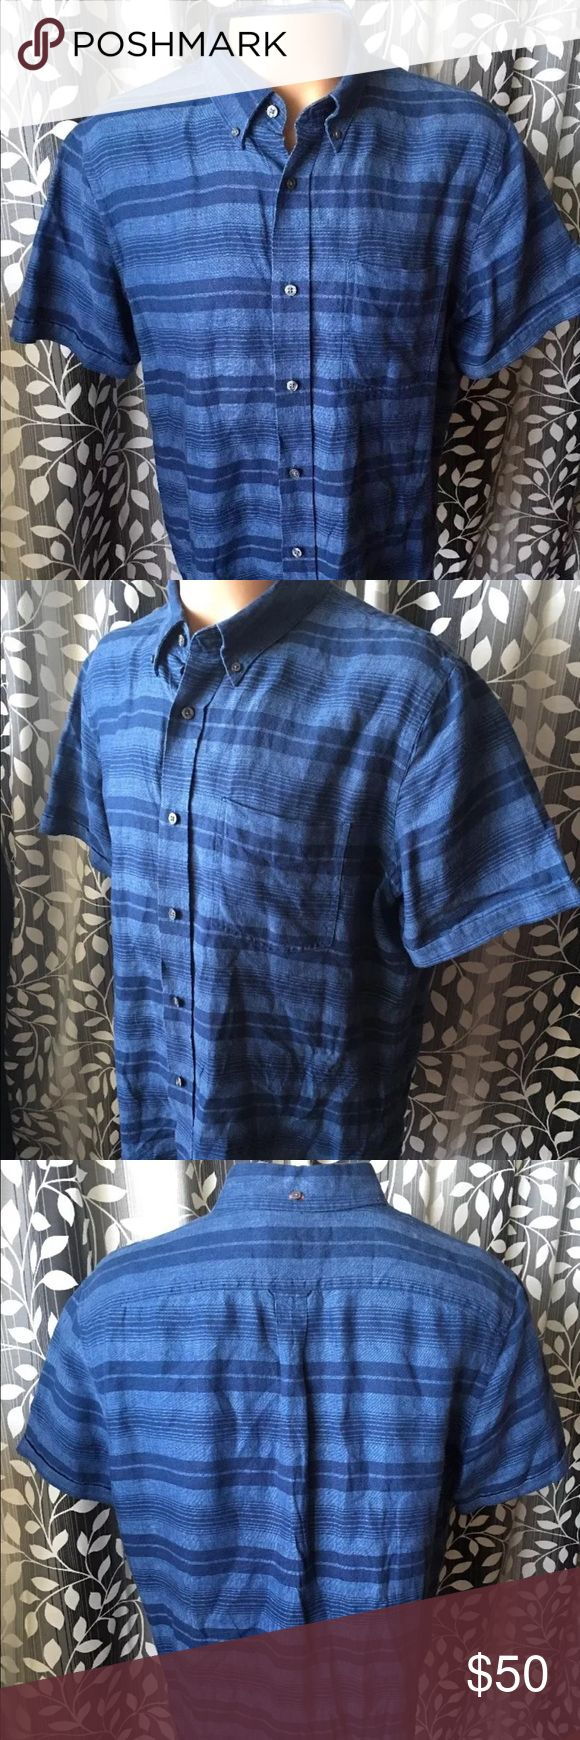 "JACK SPADE short sleeve 100% linen shirt Great JACK SPADE shirt! 100% linen. Short sleeve. Size XXL. Armpit to armpit-26"" shoulder to shoulder- 20"" neck to bottom- 31.5"". In great condition! Thank you. Jack Spade Shirts Casual Button Down Shirts"